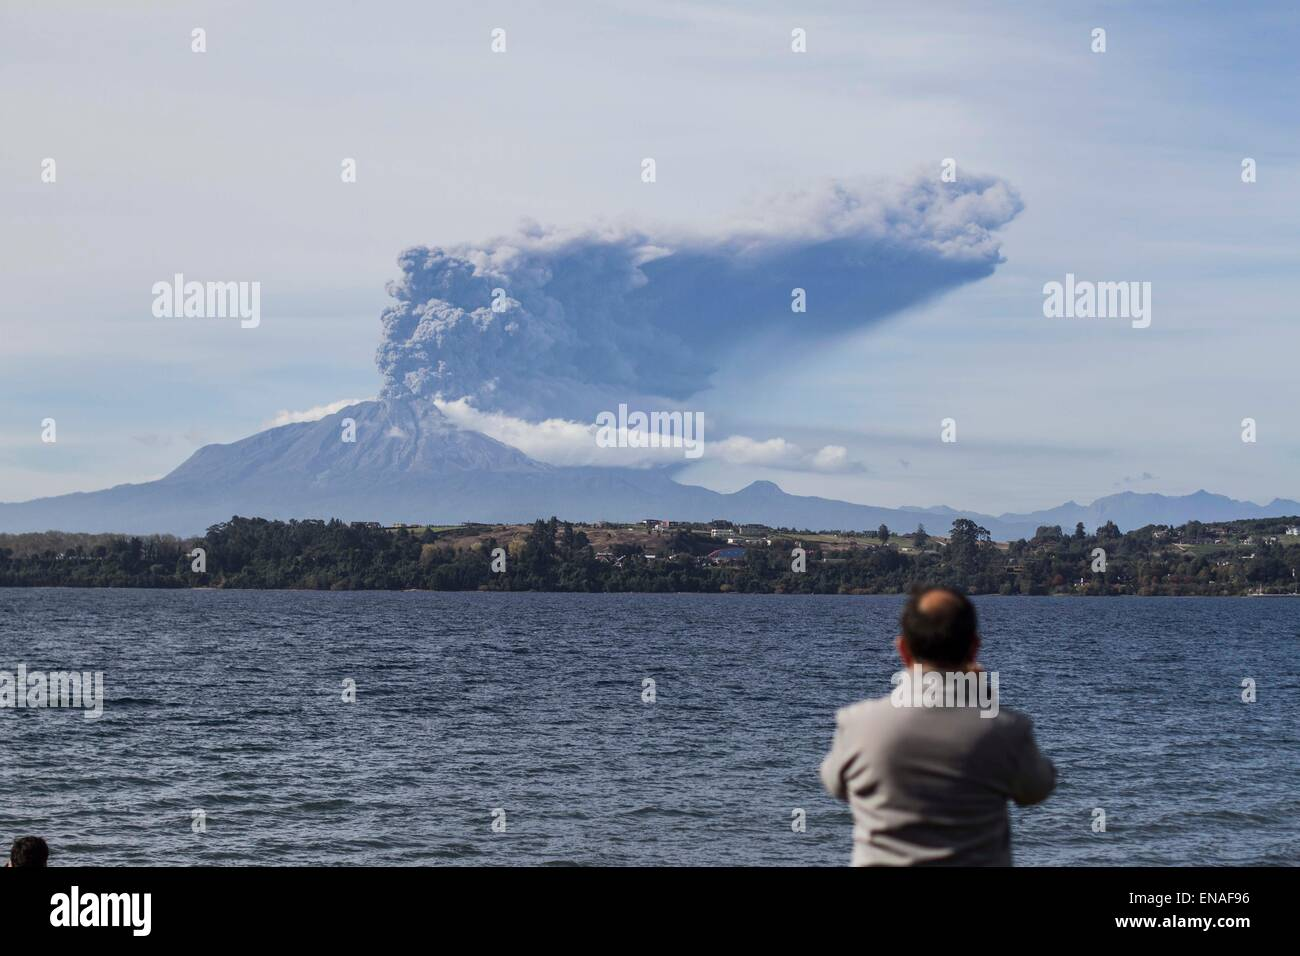 Puerto Varas, Chile. 30th Apr, 2015. A man watches the Calbuco volcano in Puerto Varas Llanquihue province, Chile, - Stock Image